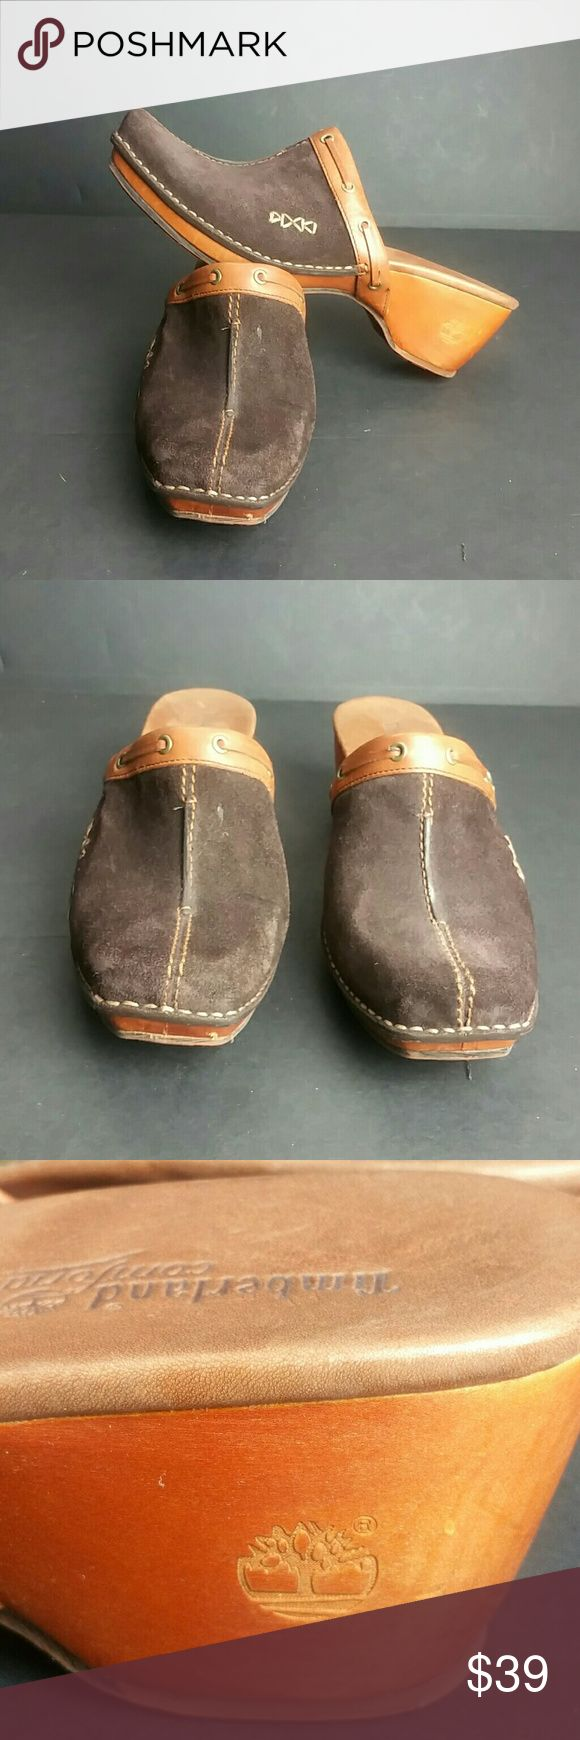 TIMBERLAND WOMEN CLOGS VERY CLEAN INSIDE-OUT   SKE # ZXPO Timberland Shoes Mules & Clogs